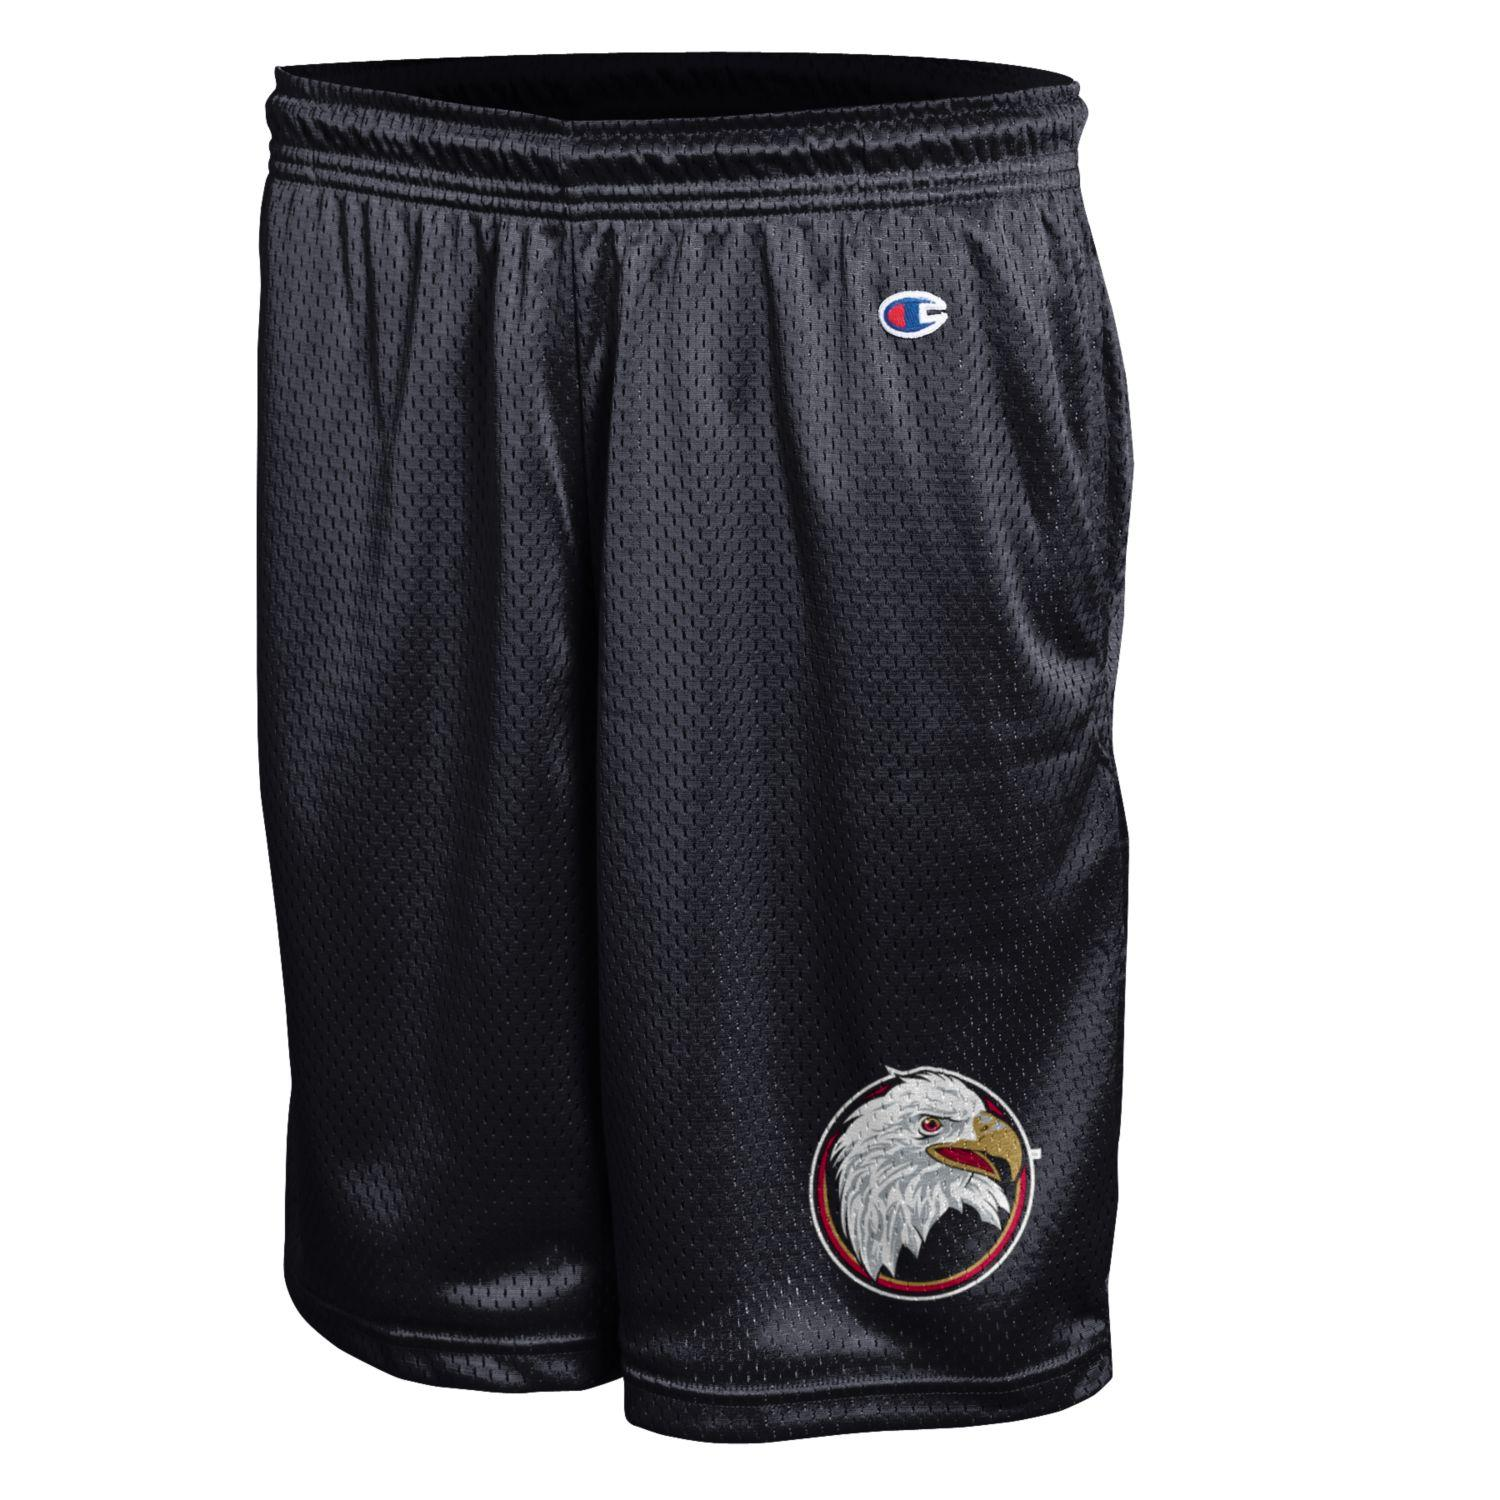 Champion Men's Shorts Black